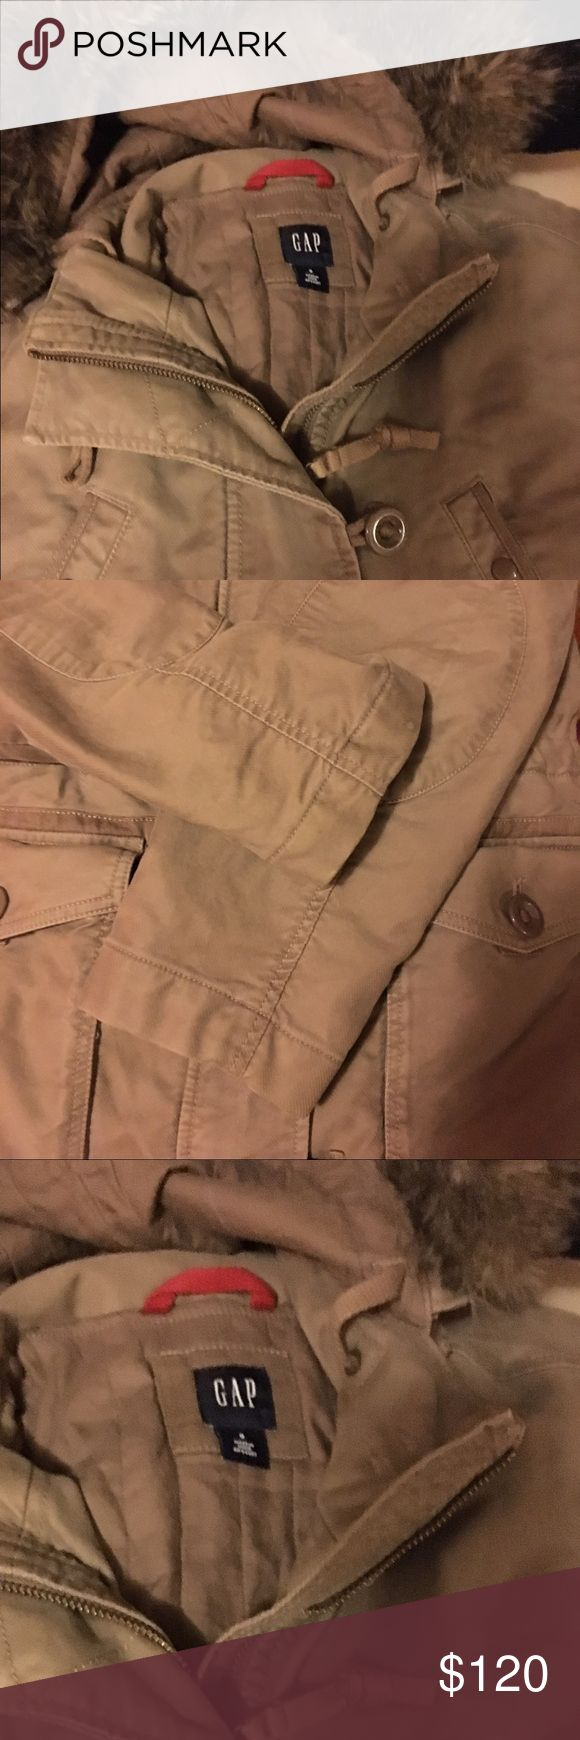 NWOT GAP COAT Gap women's small coat. Never used just had stored in closet. Runs big. Can fit up to medium very warm and fur trimming on hat, can be removed GAP Jackets & Coats Utility Jackets